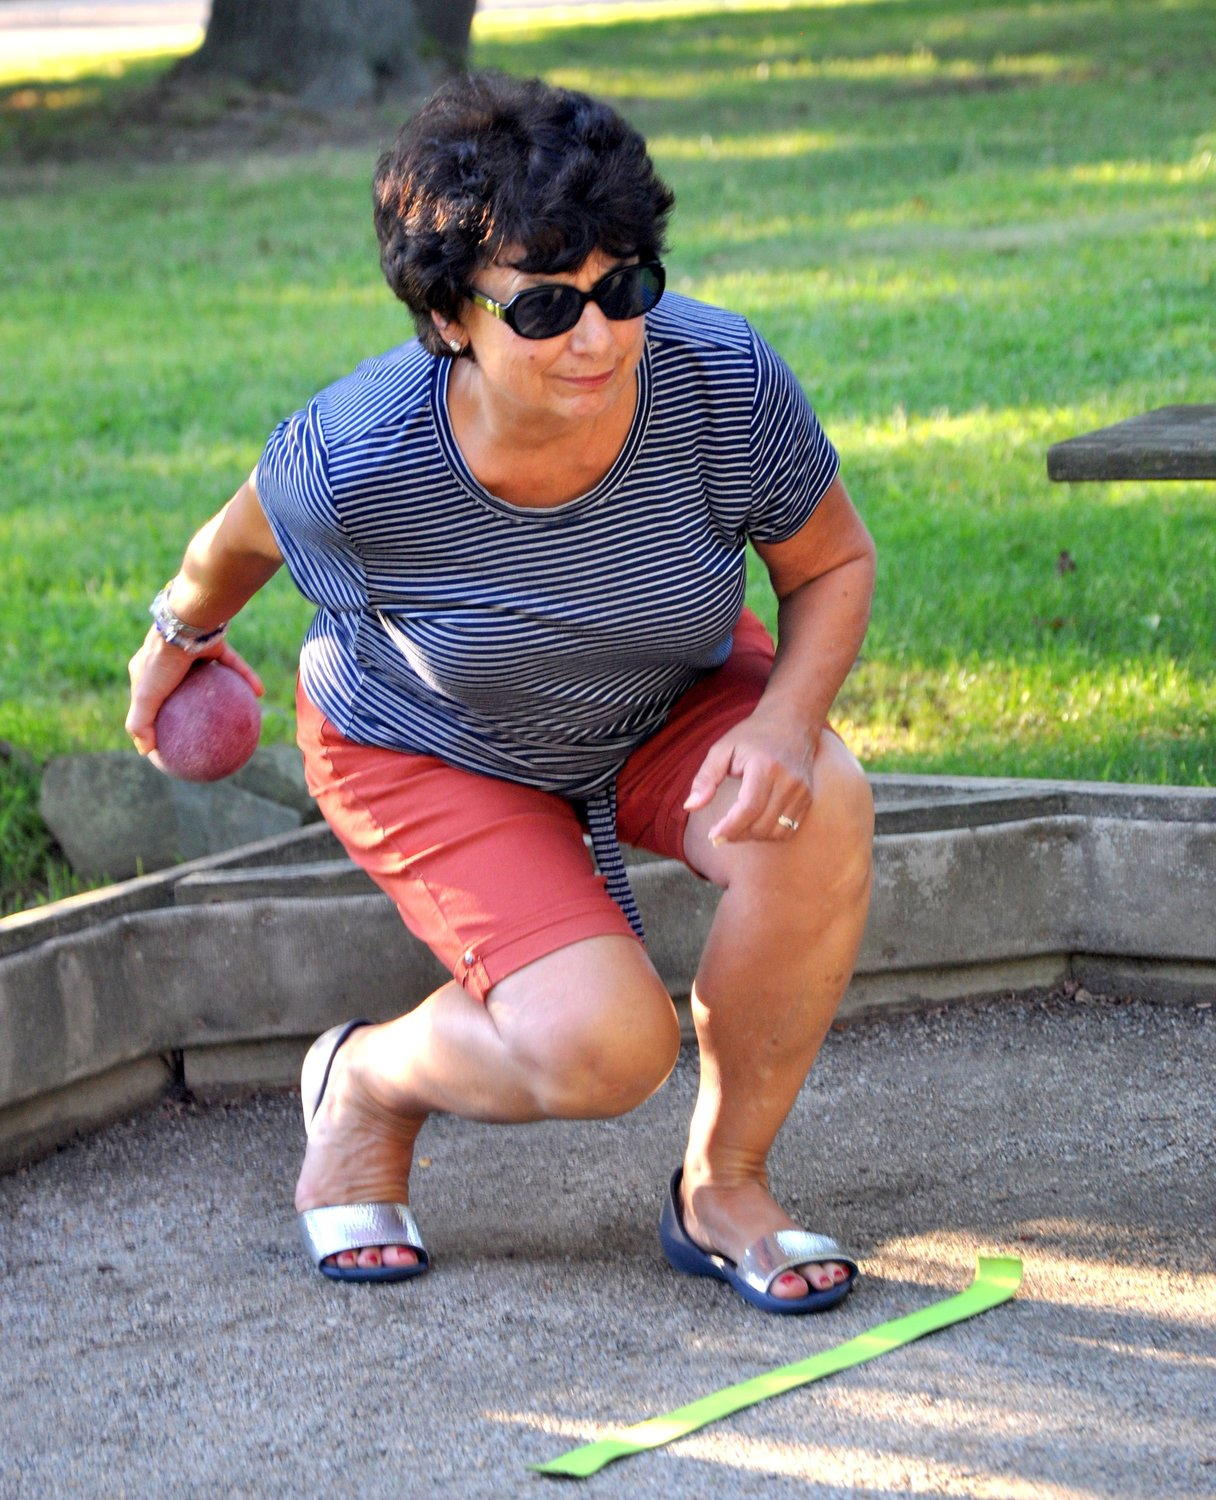 Hopeworth Bocce League's Madlyn McArdle shows the perfect delivery form.